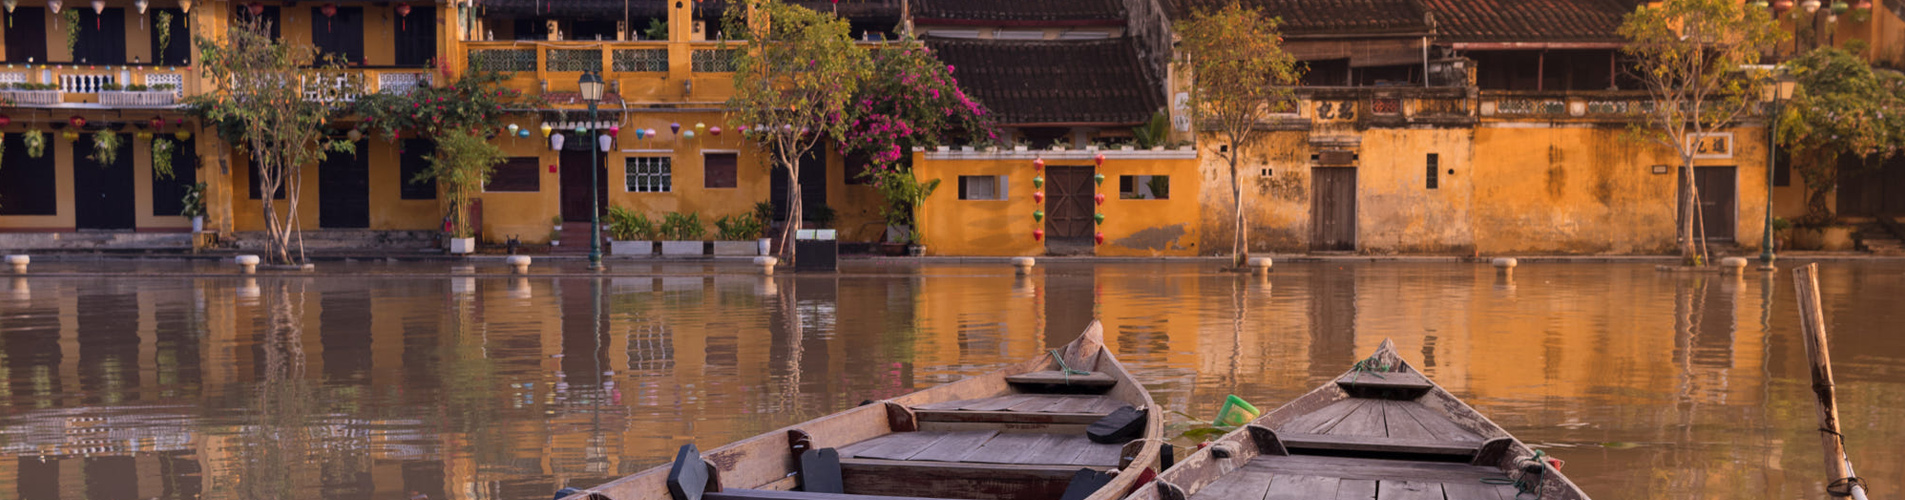 hoi an ancient town and the amazing facts you might not know